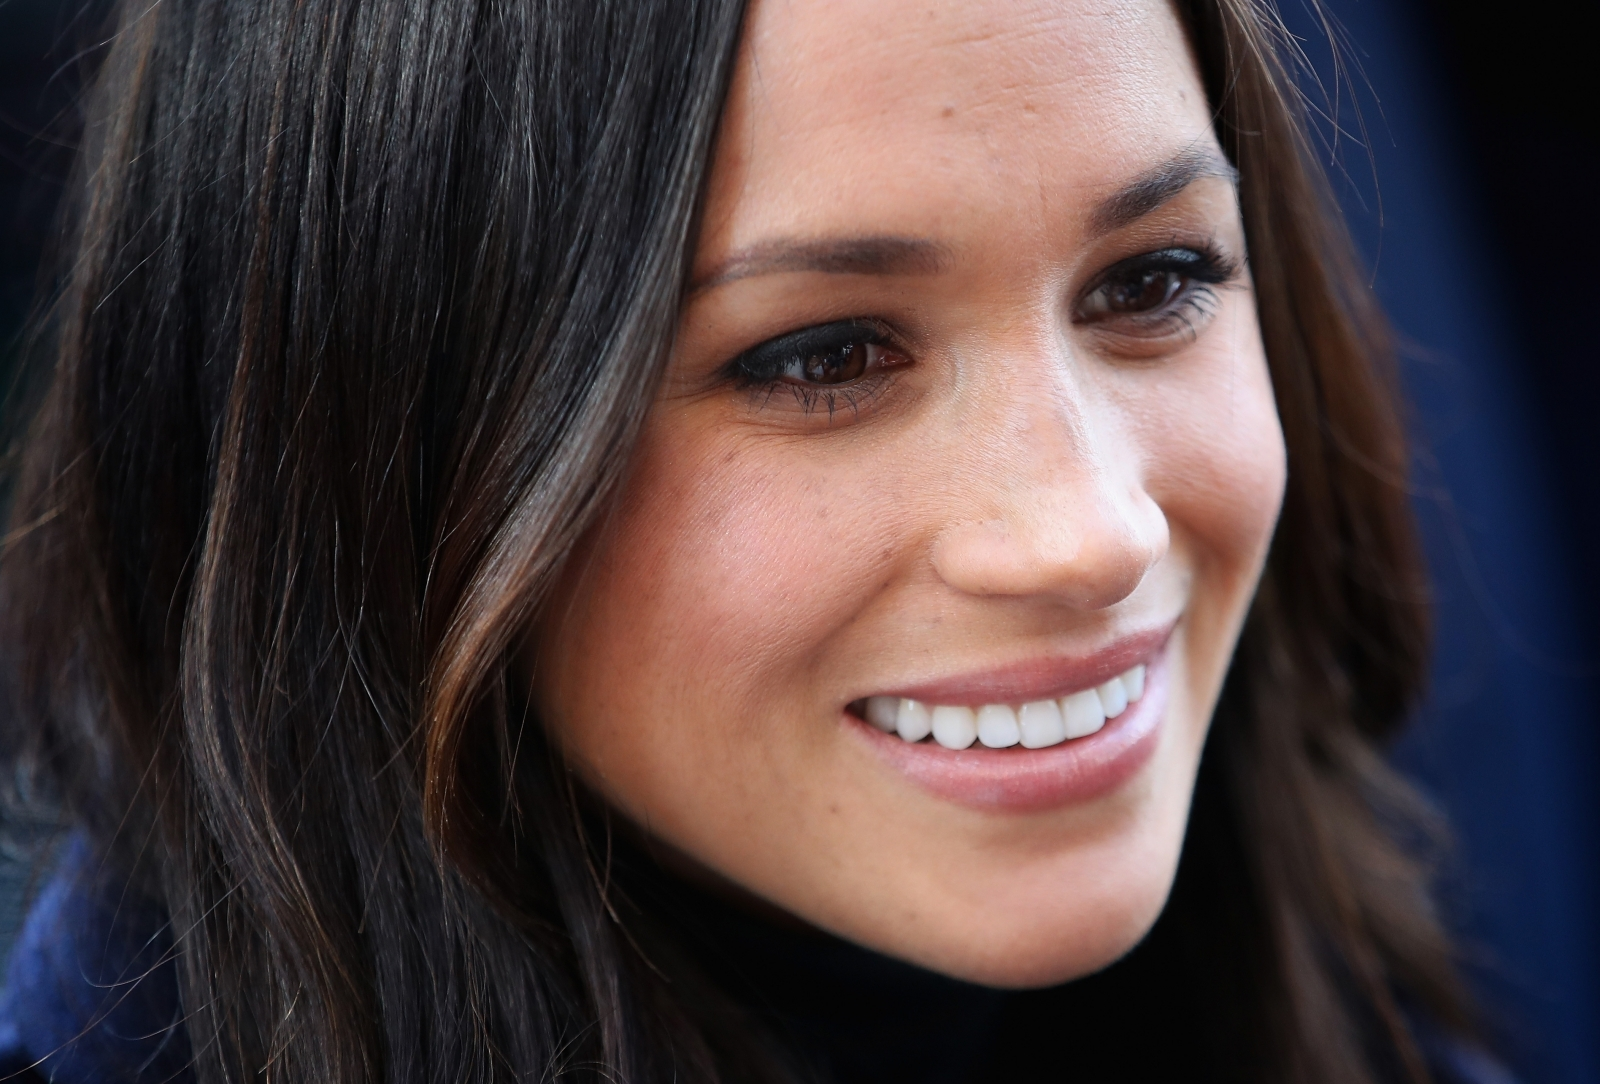 Meghan Markle S Nose Why It Is So Popular And How Much